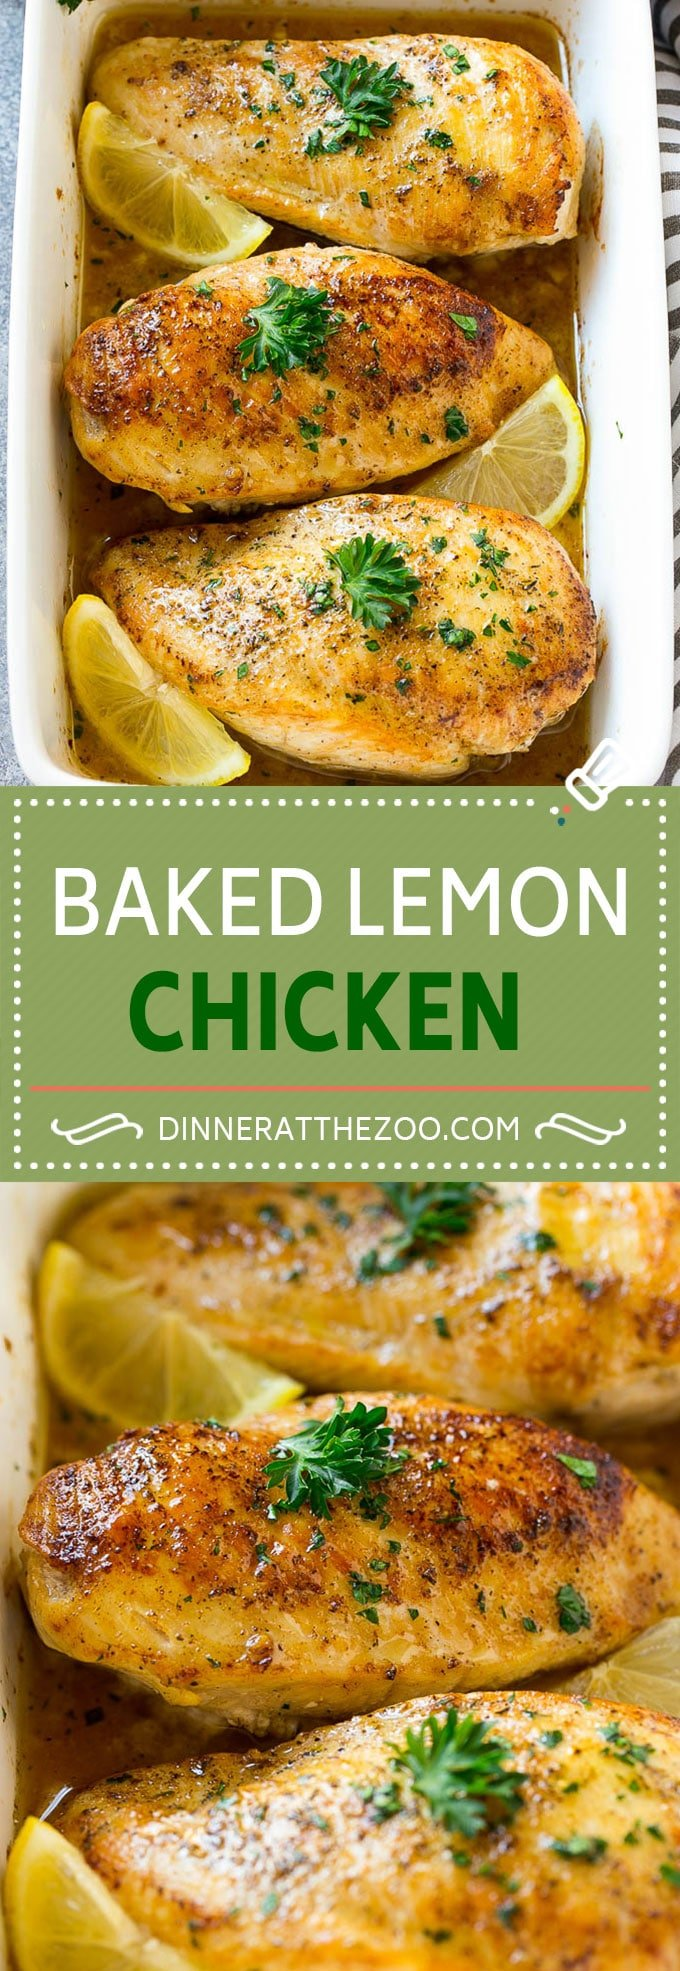 Baked Lemon Chicken Recipe | Baked Chicken Breasts | Lemon Chicken Recipe | Easy Chicken Recipe #chicken #lemon #bakedchicken #chickenbreast #lowcarb #dinner #dinneratthezoo